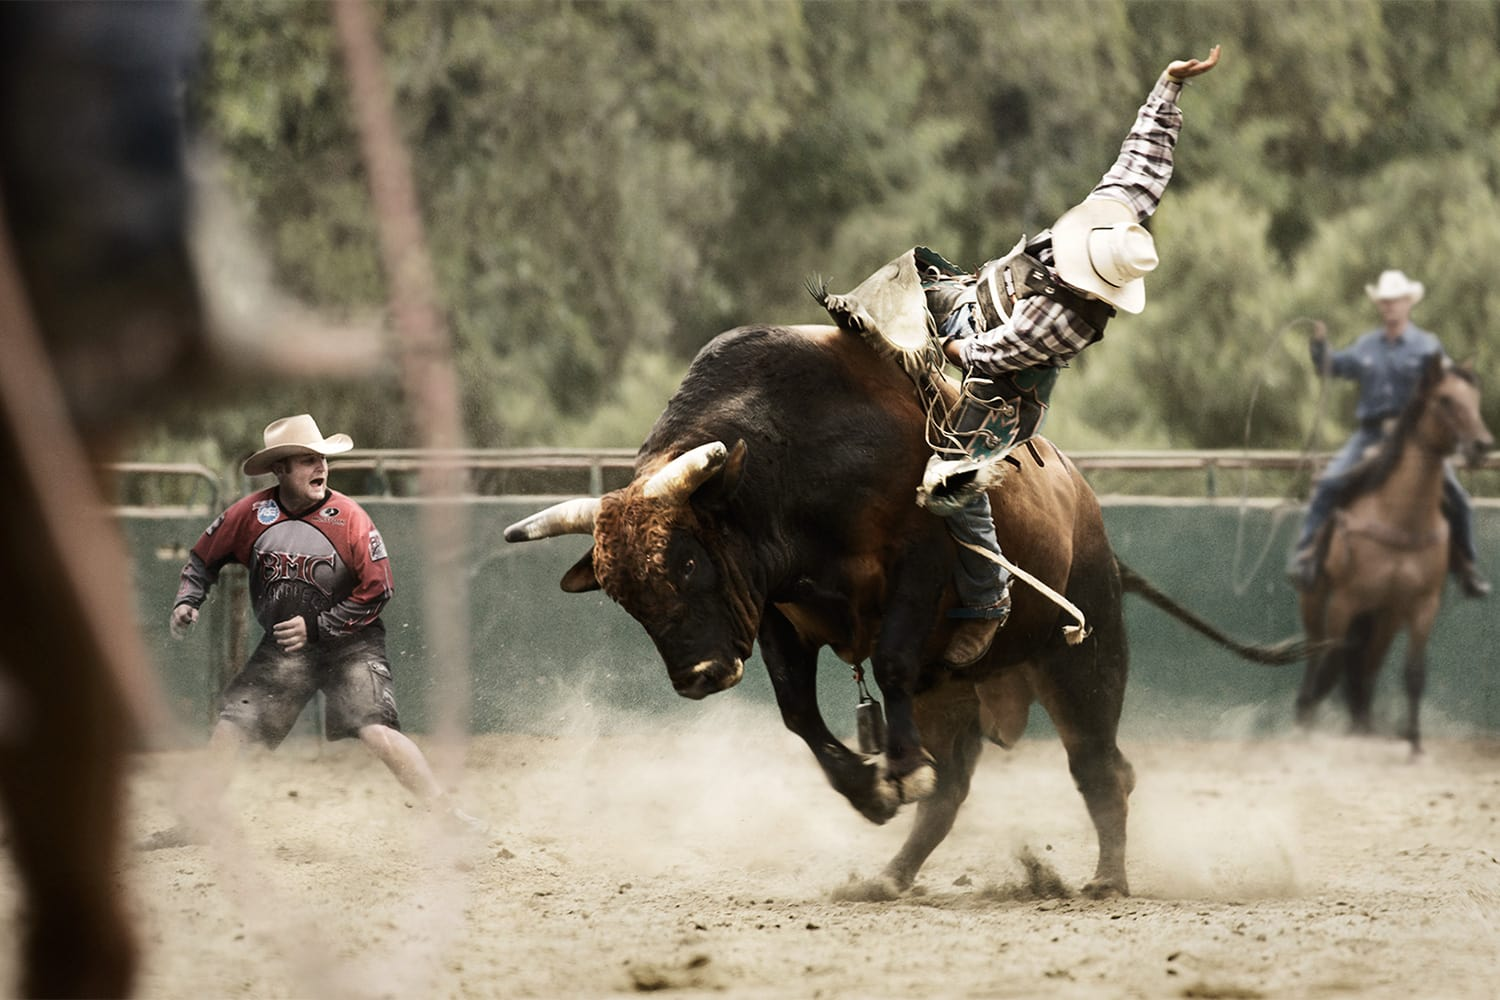 Rodeo-Bull-rider-PBR-wrangler-cowboy-Rod-McLean